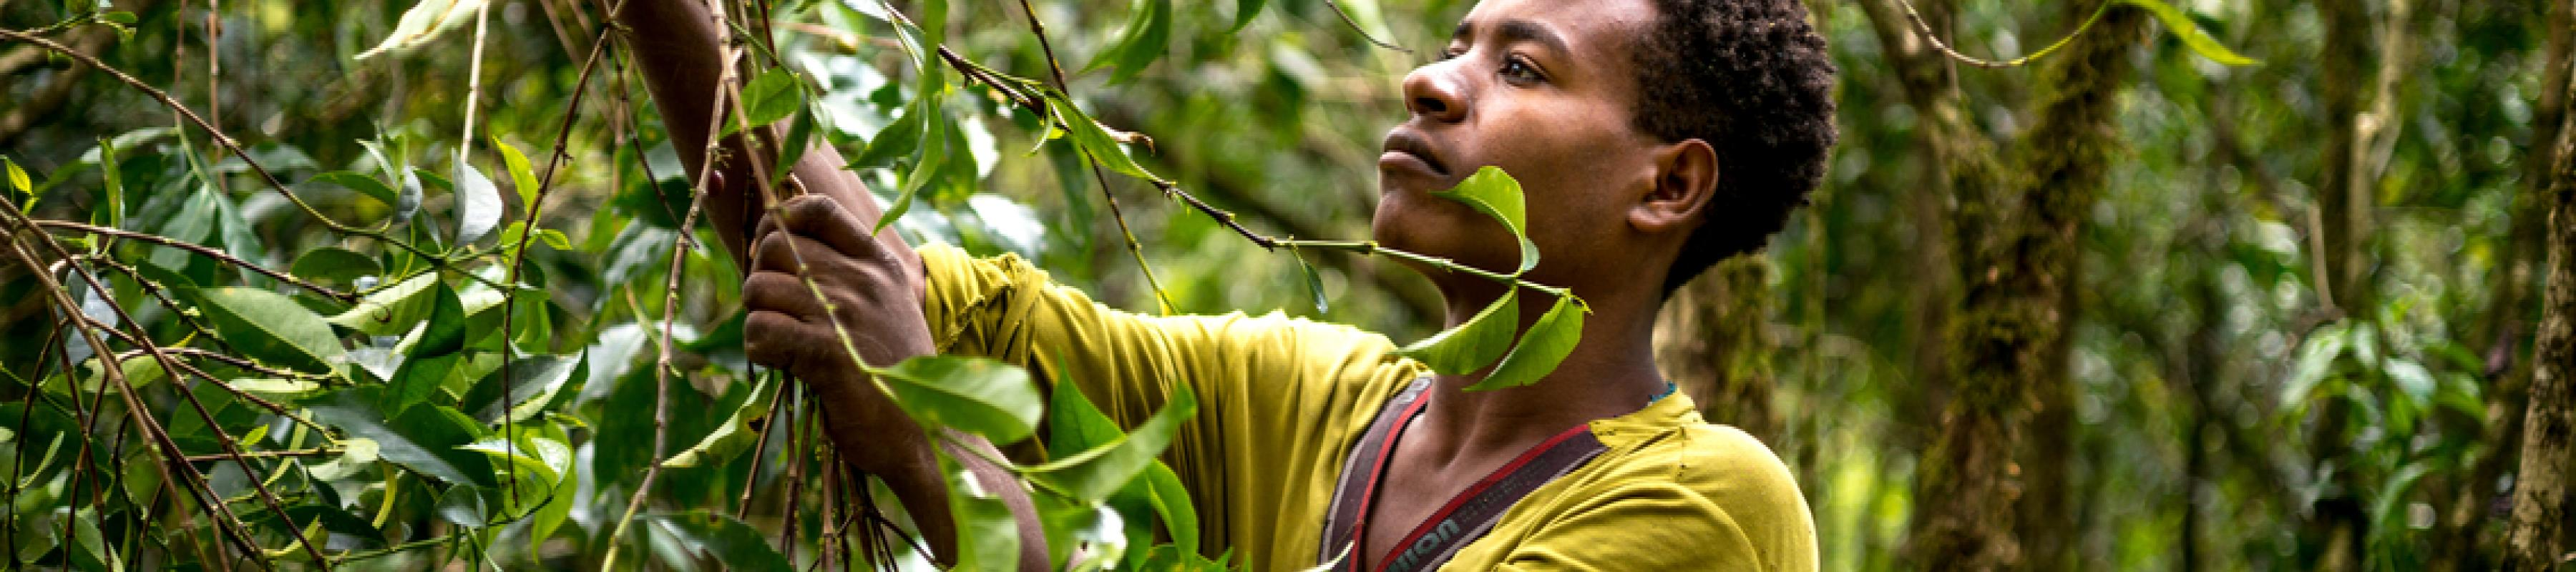 A man harvesting coffee in Ethiopia